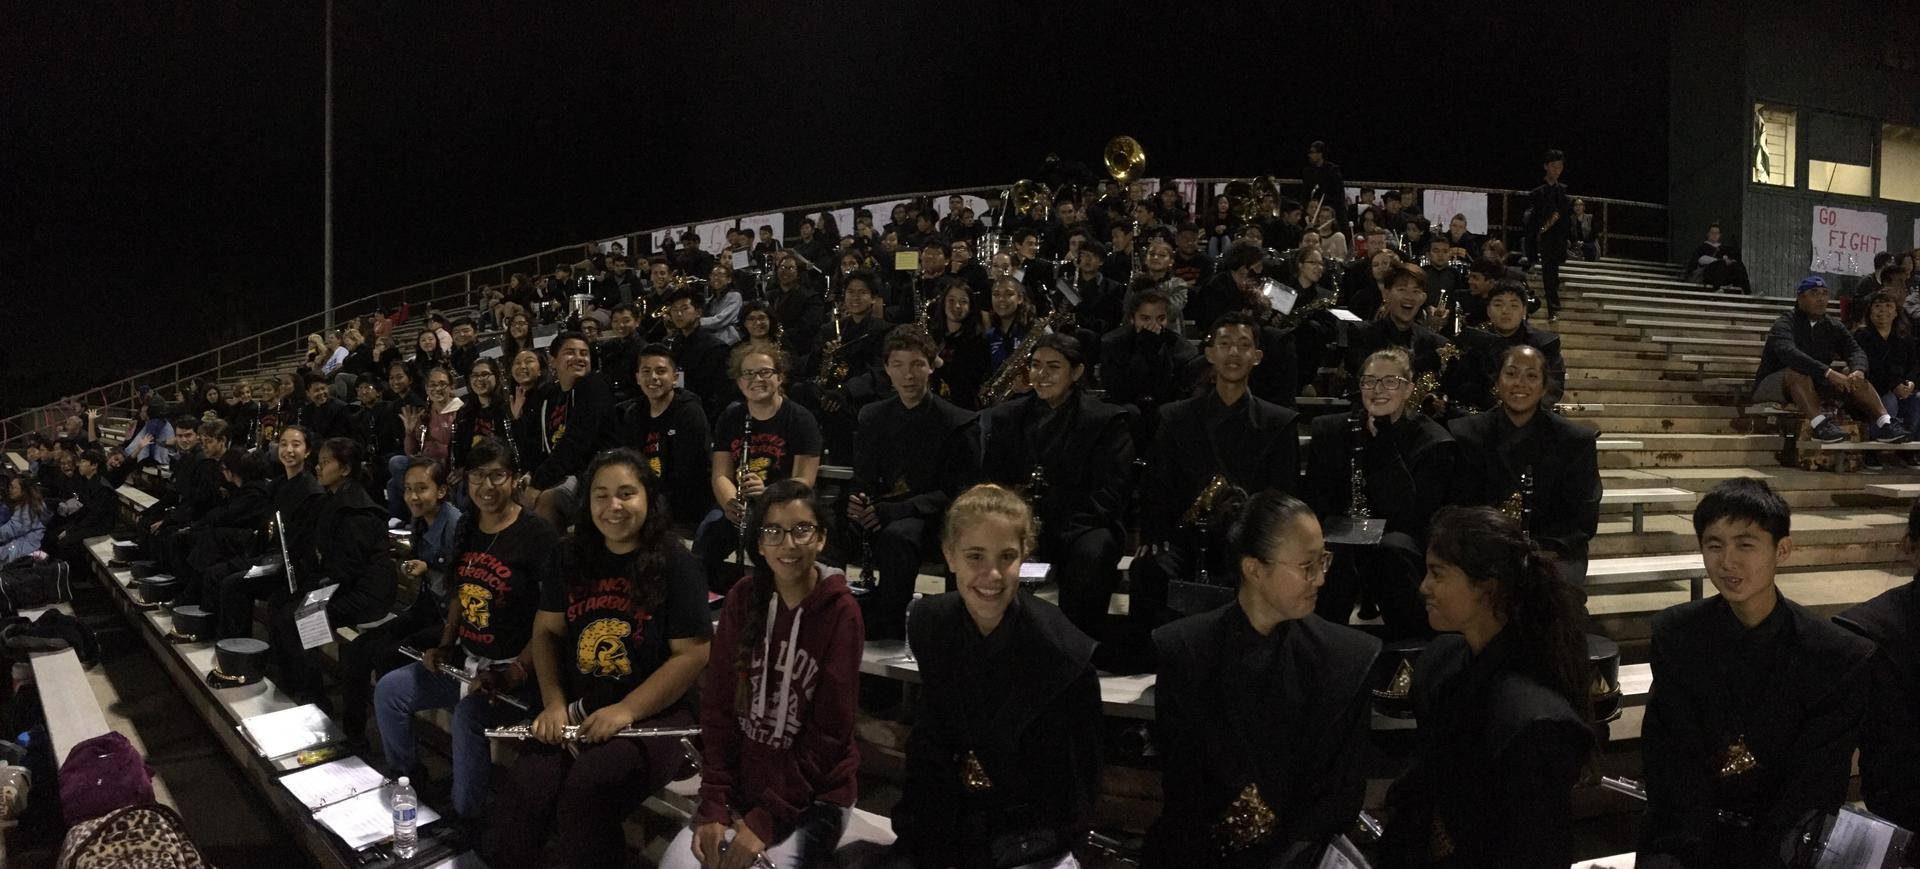 Sunny Hills High School Junior High Band Night and Football Game